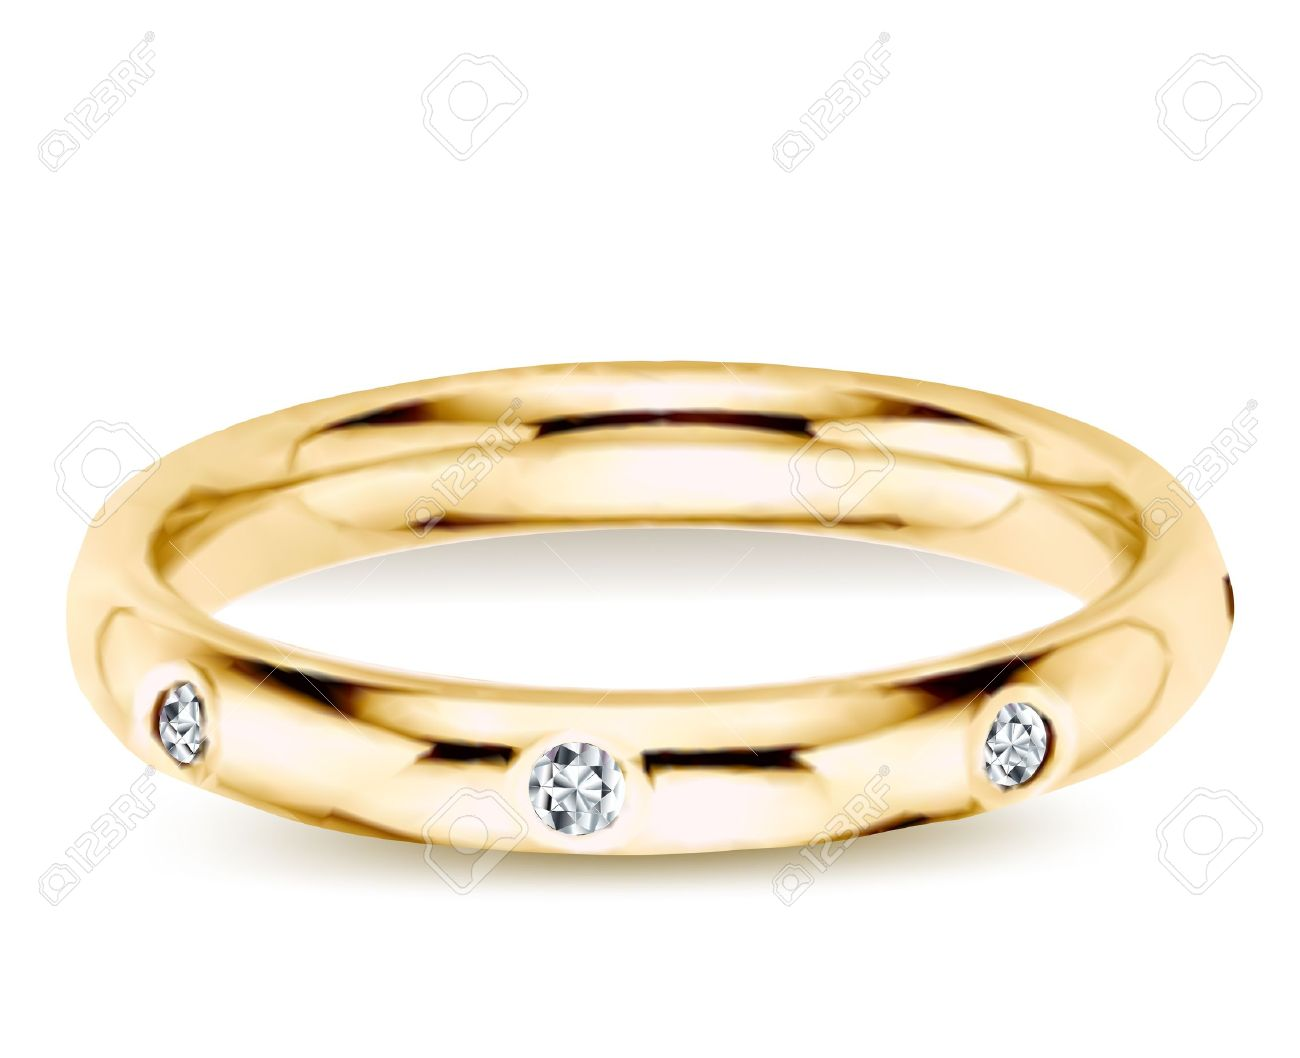 Golden Ring Image Golden Ring With Diamonds